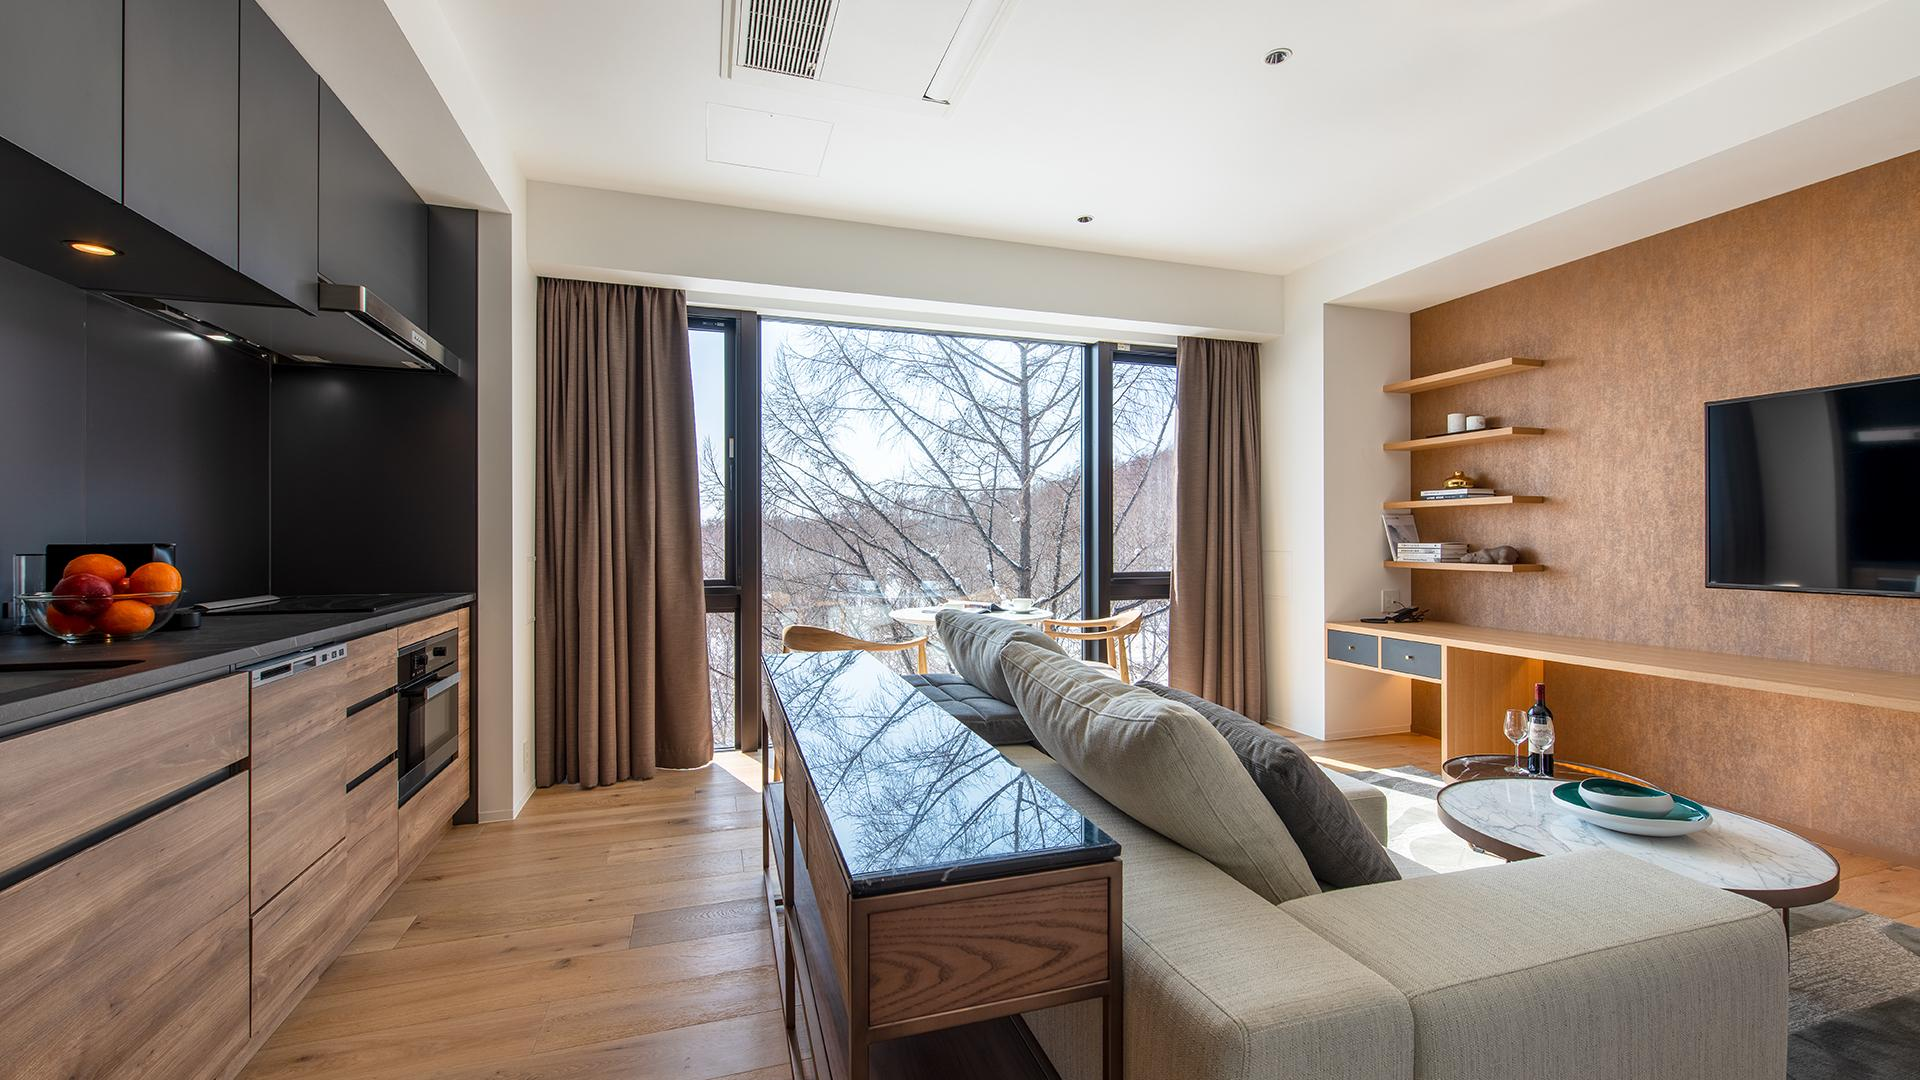 One-Bedroom Deluxe Apartment image 1 at Intuition Niseko by Abuta District, Hokkaido, Japan